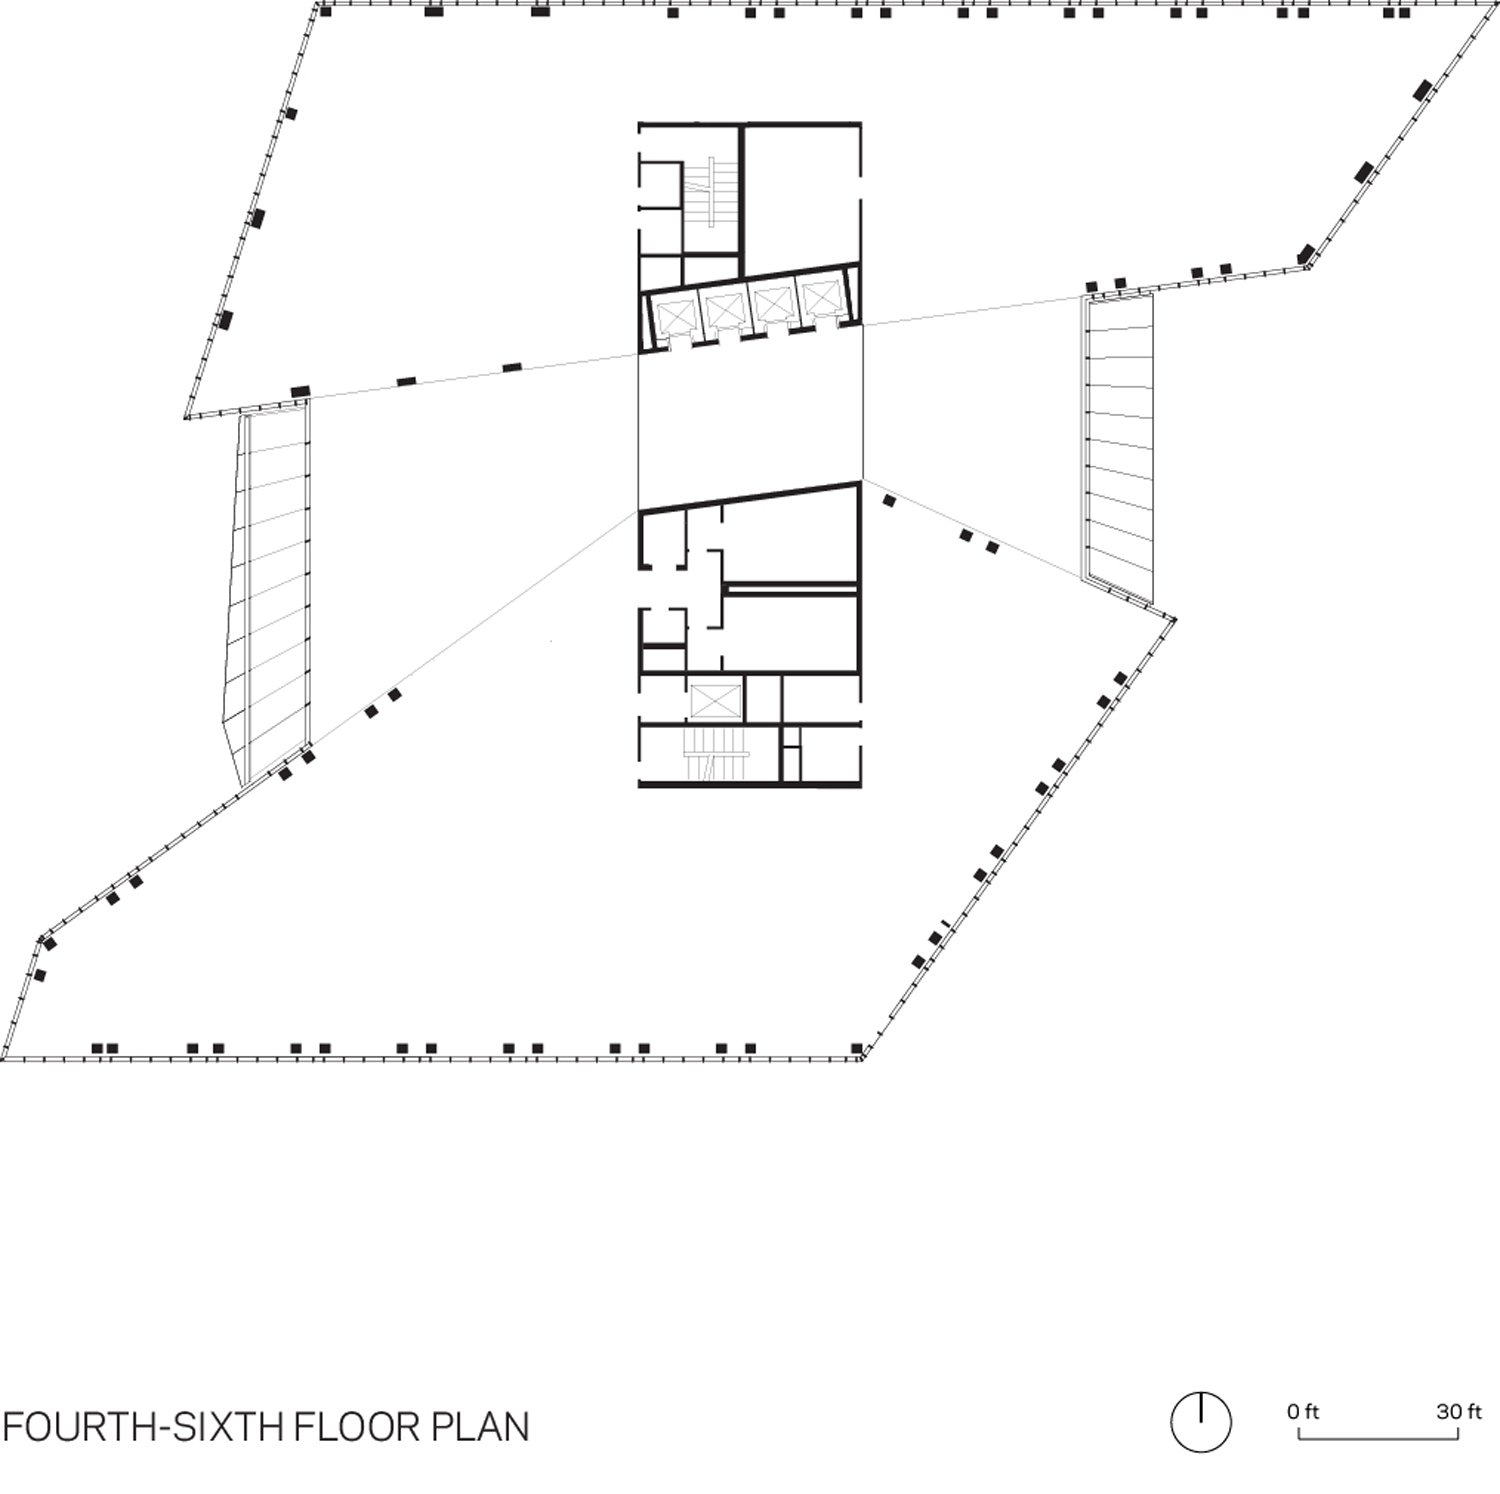 FOURTH TO SIXTH FLOOR PLAN WEISS/MANFREDI}